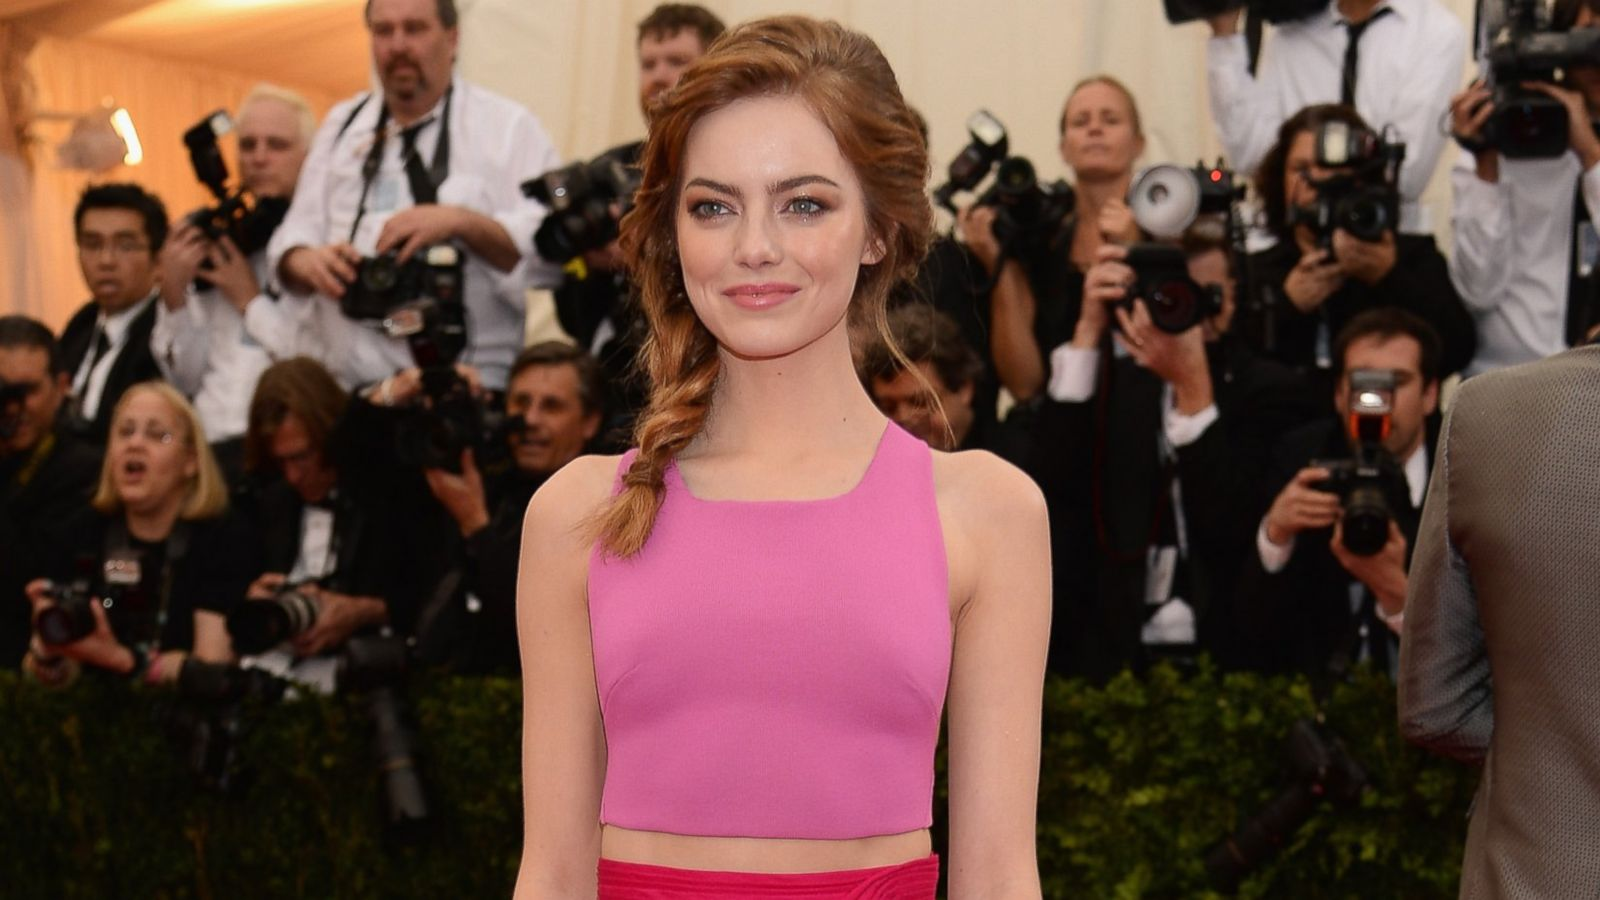 Emma Stone: Keeping Weight on is a Struggle ForMe' Emma Stone: Keeping Weight on is a Struggle ForMe' new images